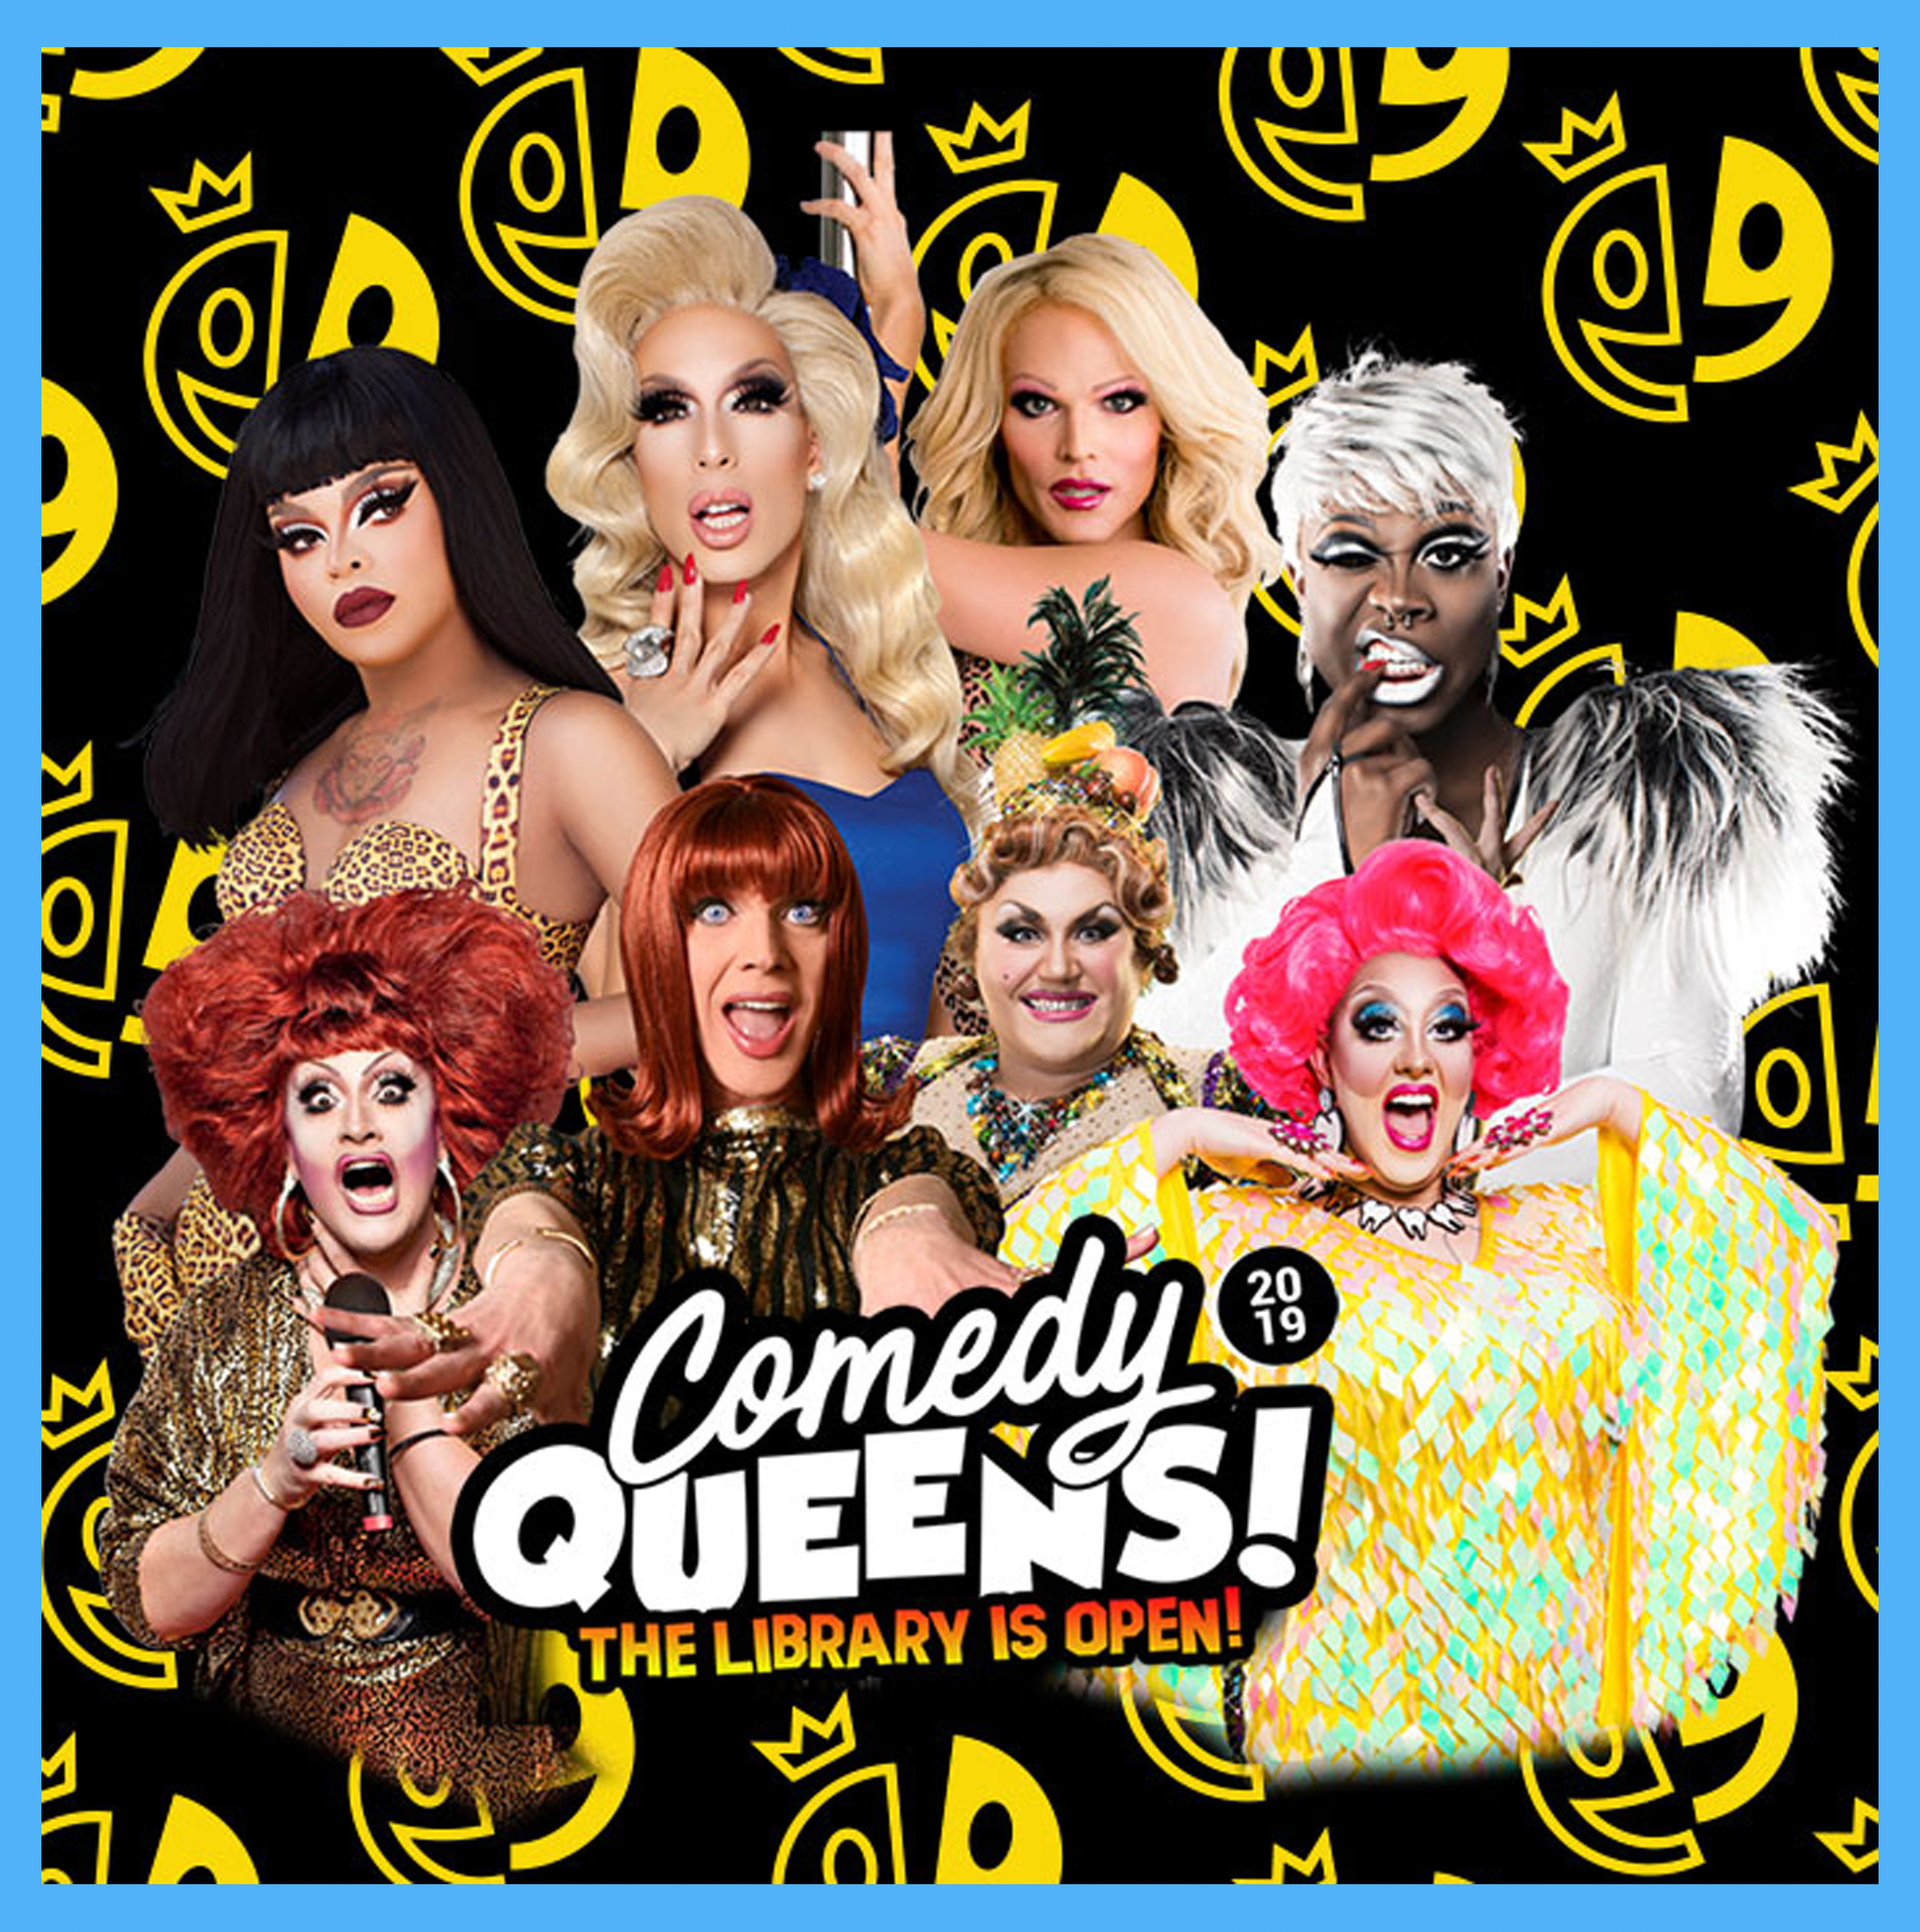 ADELAIDE, AU - August 22nd, 2019, 7:00pmYou loved laughing your face off this year, now get ready to do it all again in 2019! We'll be bringing you more laughs than you can handle with this international cast of comedy queens. We've got your favourites from Youtube, Drag Race and this year, we're adding some local talent in to the mix.